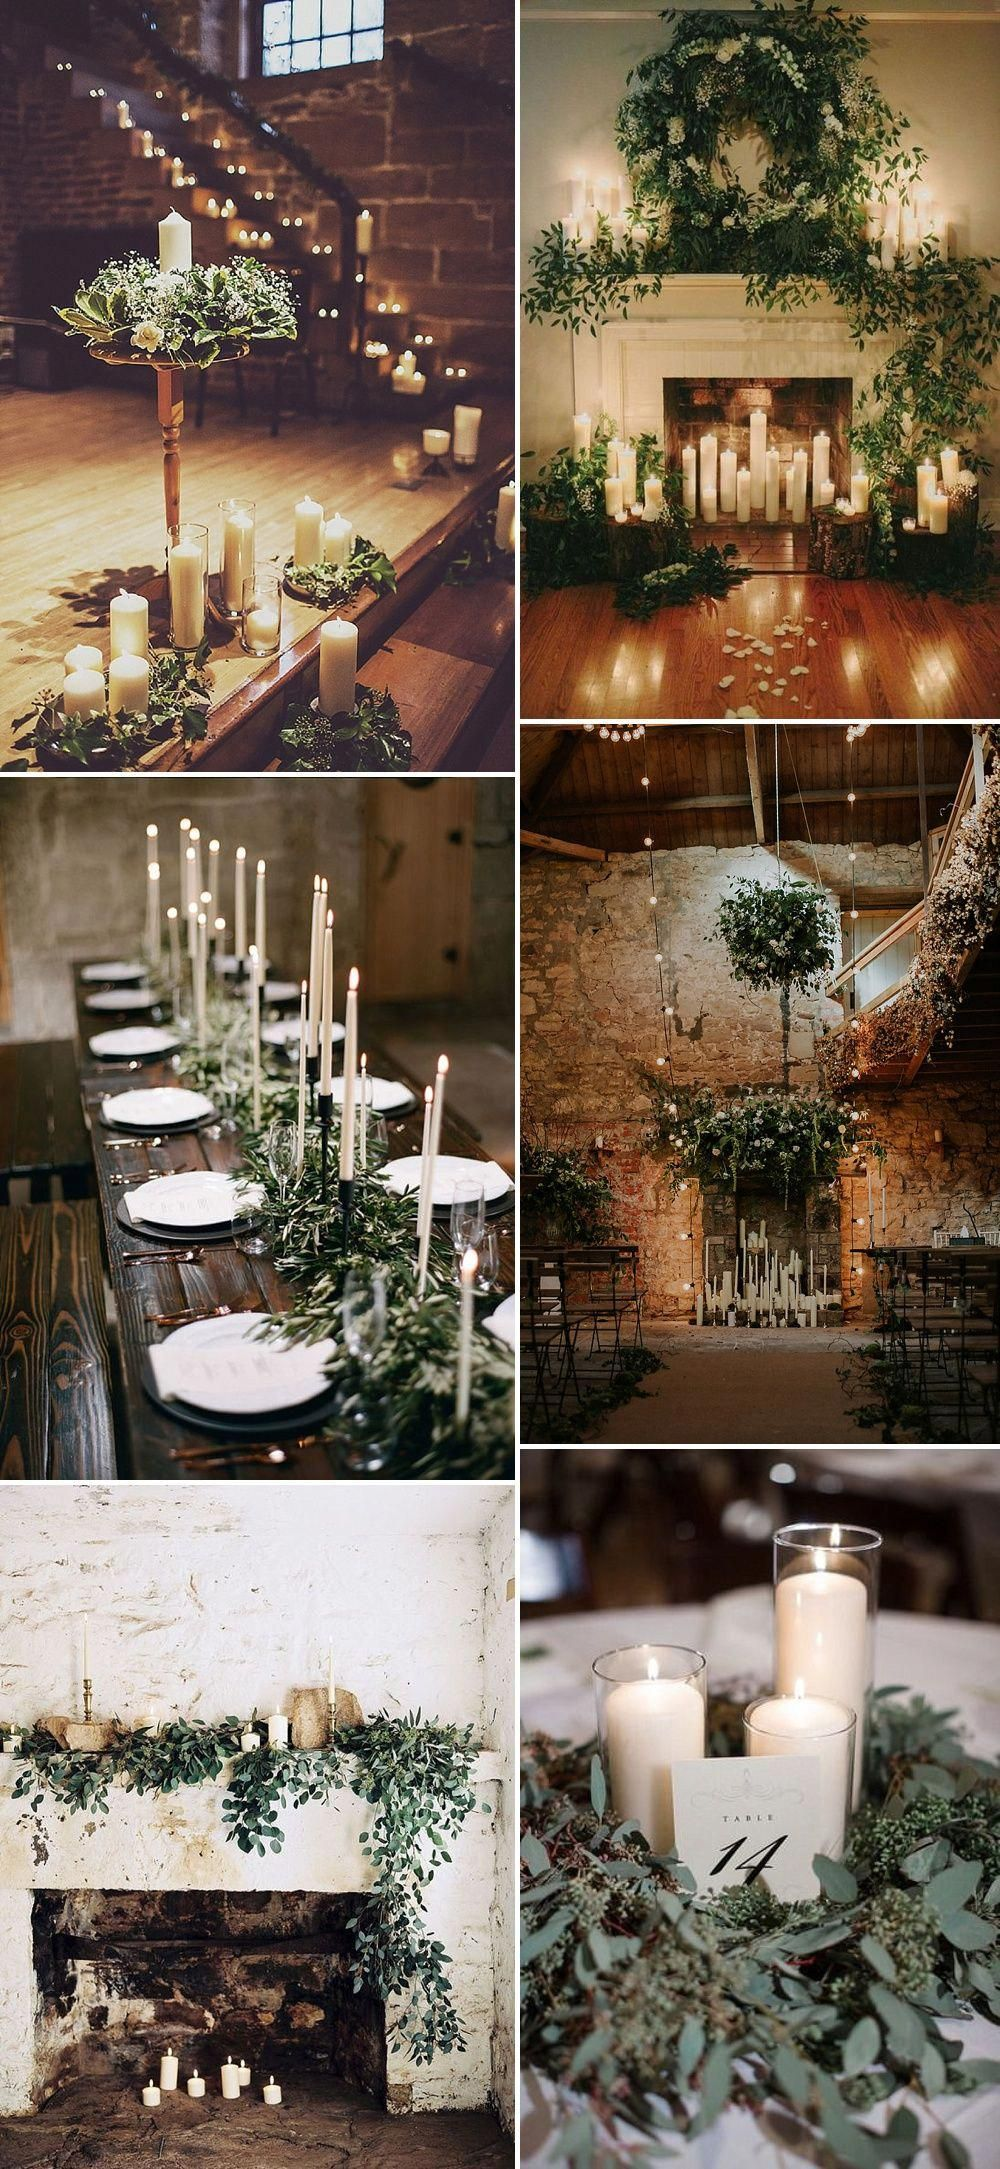 How To Have A Stylish Winter Festive Christmas Wedding